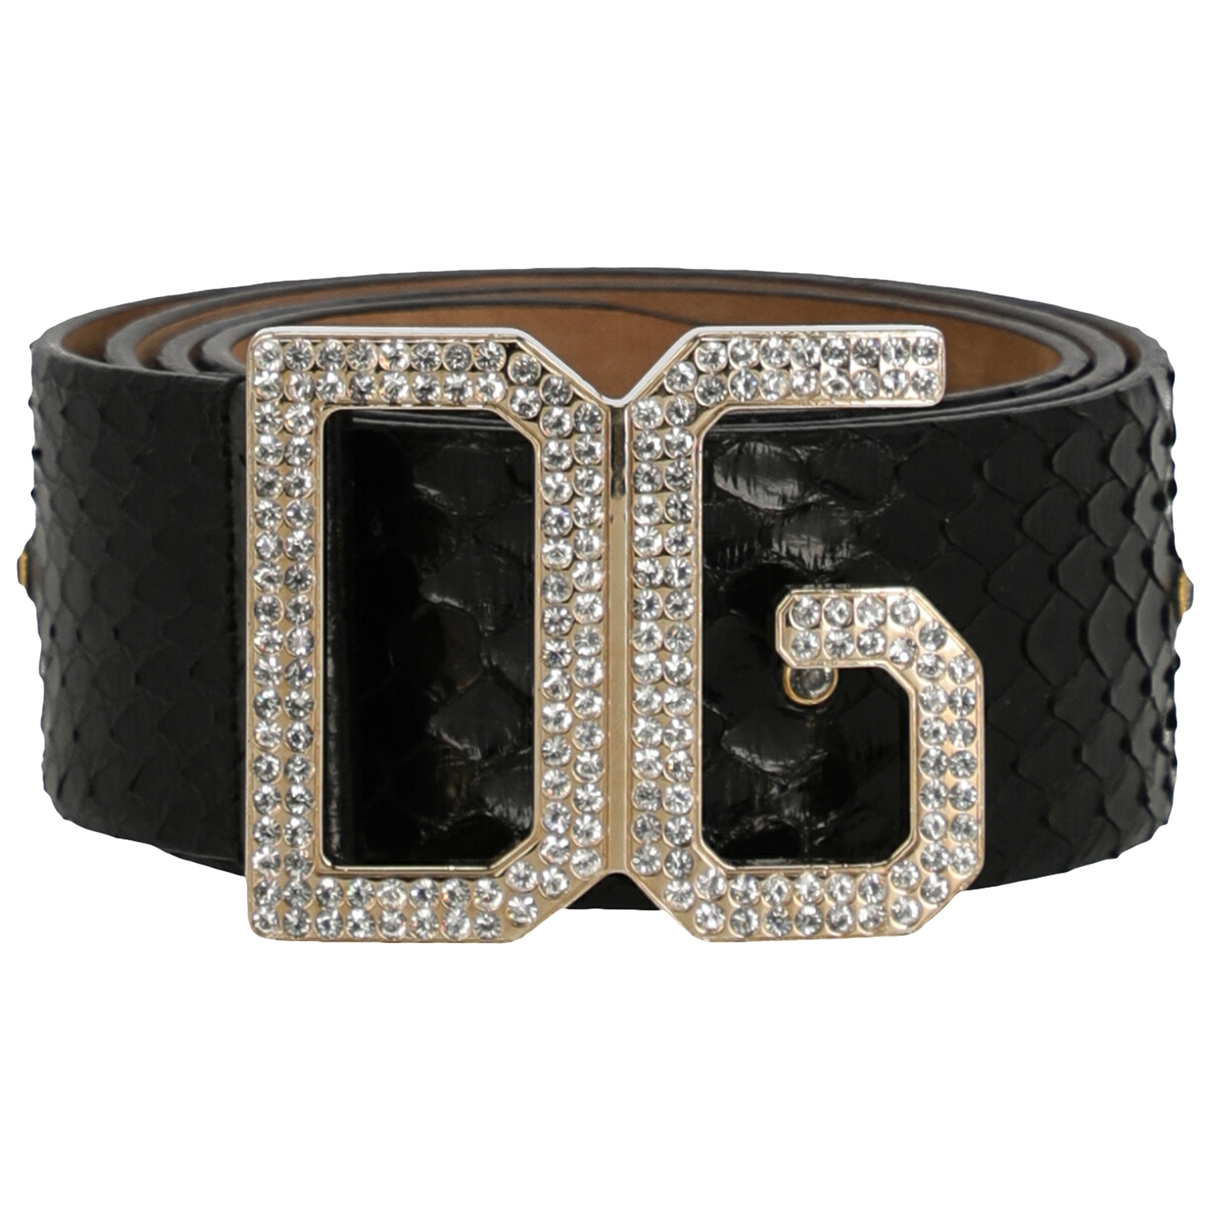 Dolce & Gabbana \N Black Python belt for Women XXS International